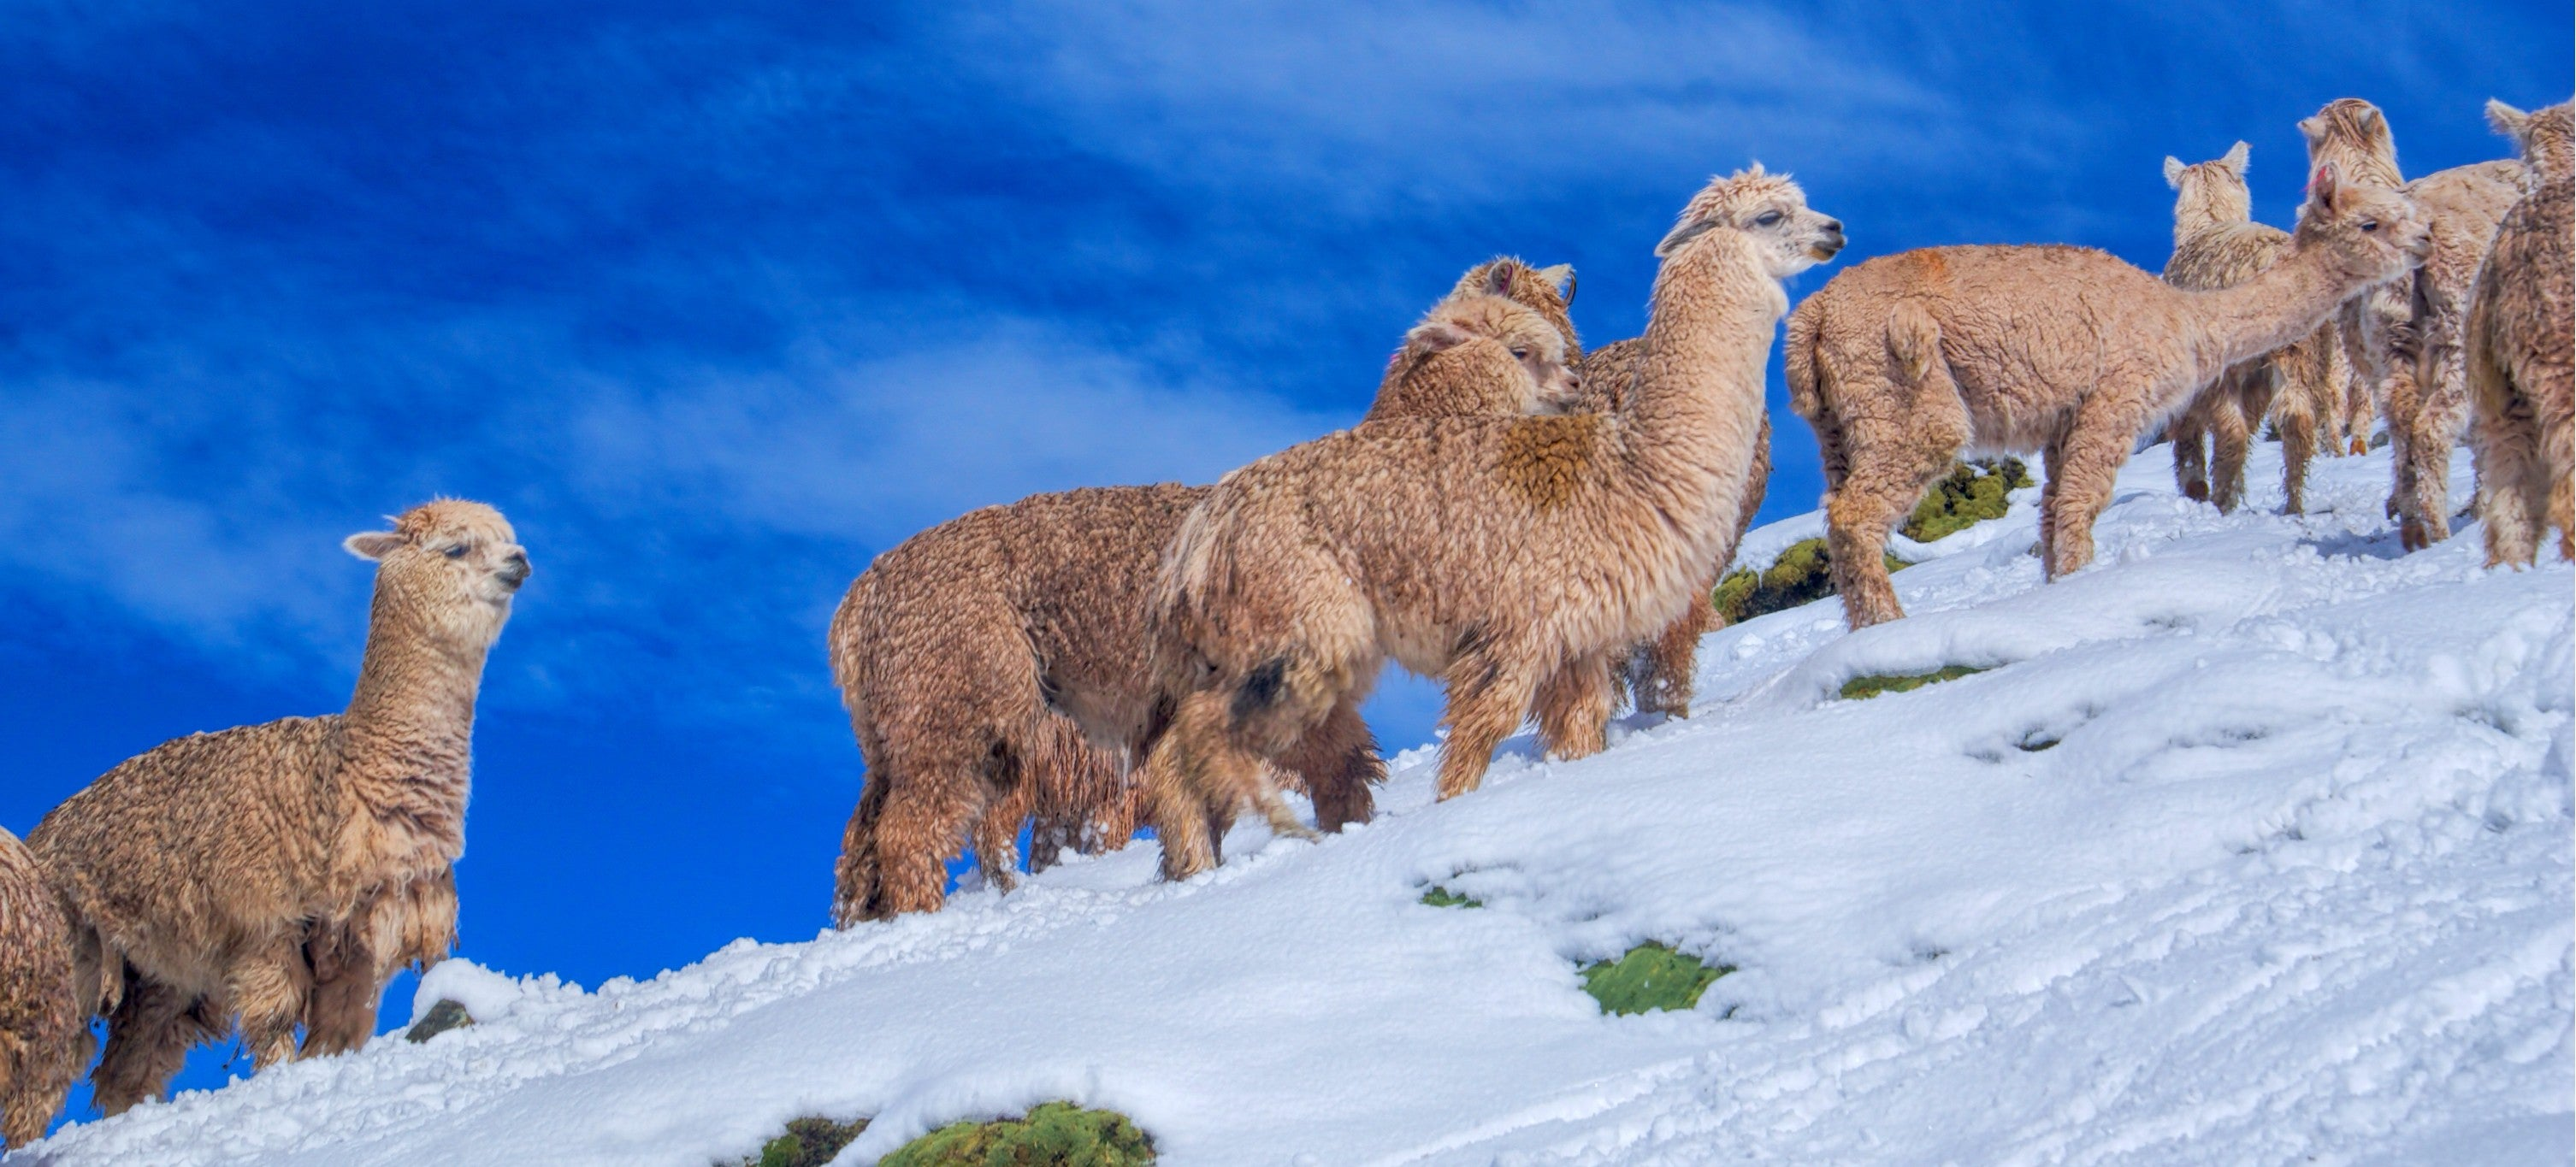 alpacas hiking a snowy mountain